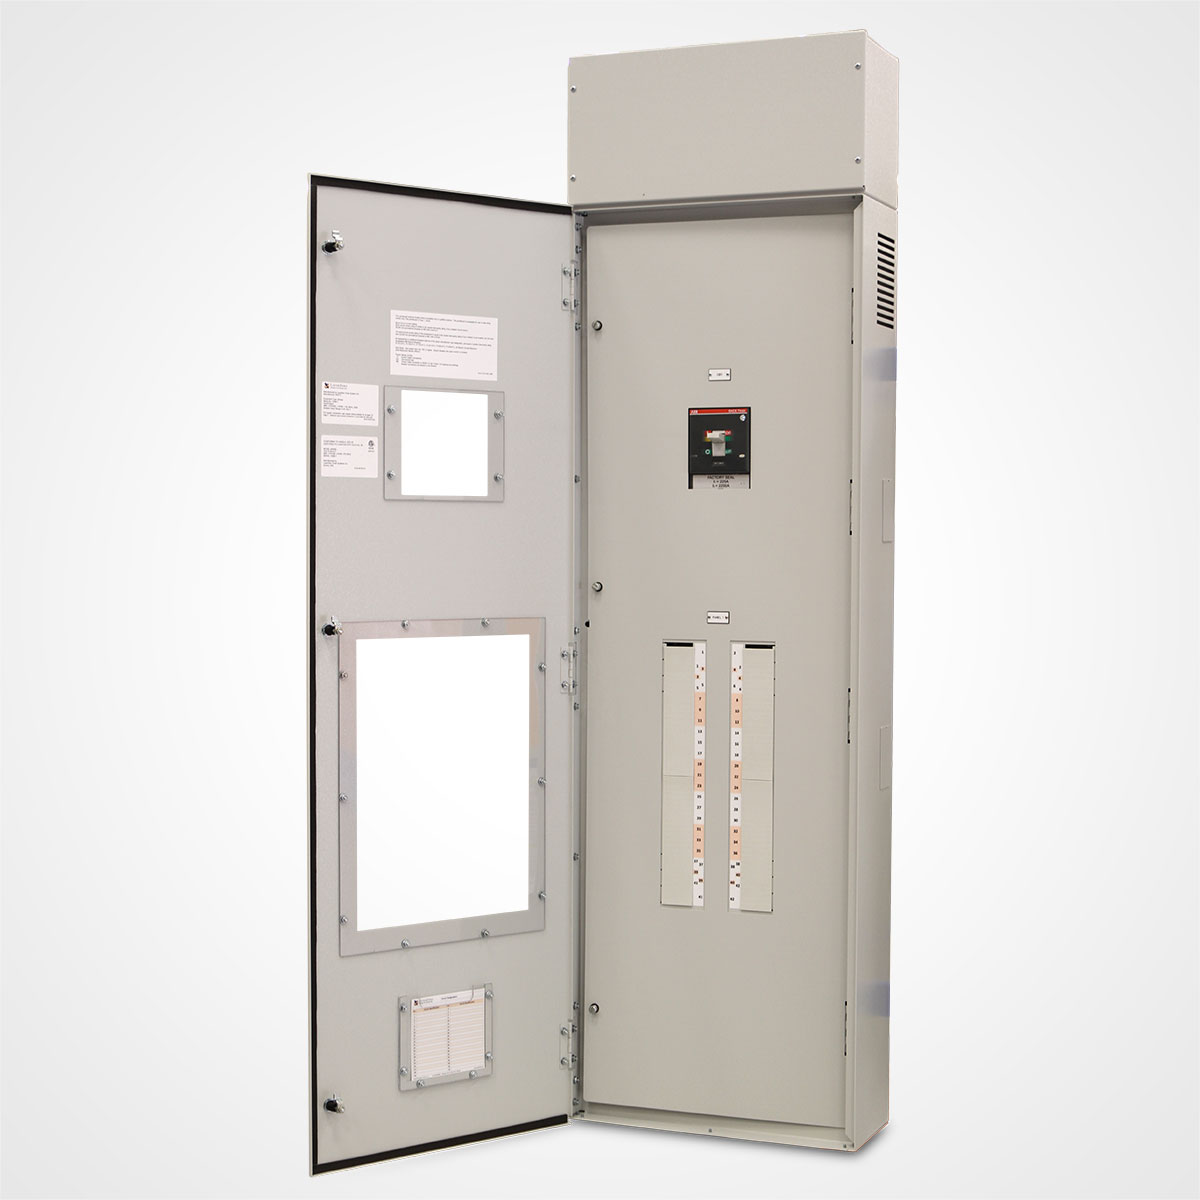 The LayerZero Series 70: ePanel-1 with Outer Door Open.